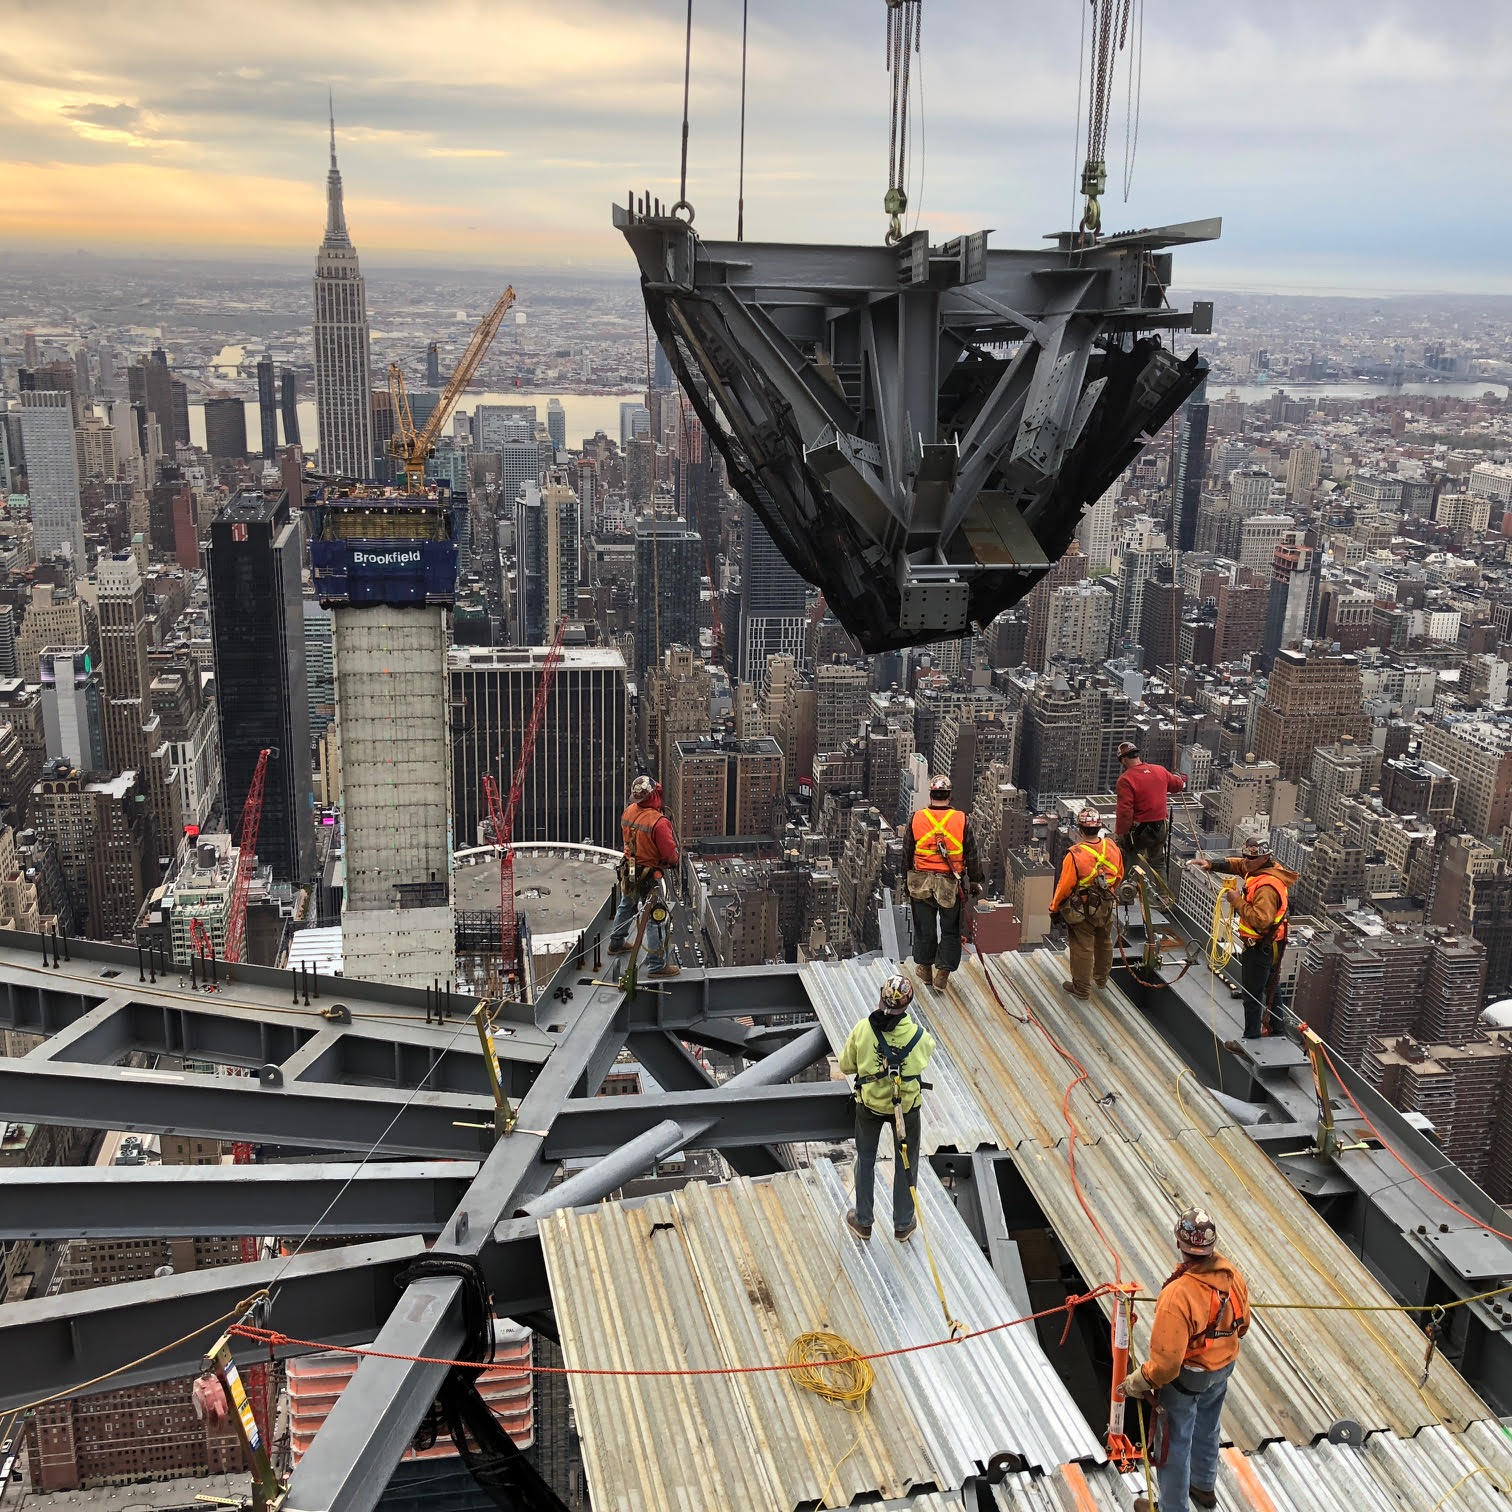 30 Hudson Yards observation deck April 2018 2 - New York's The Edge...